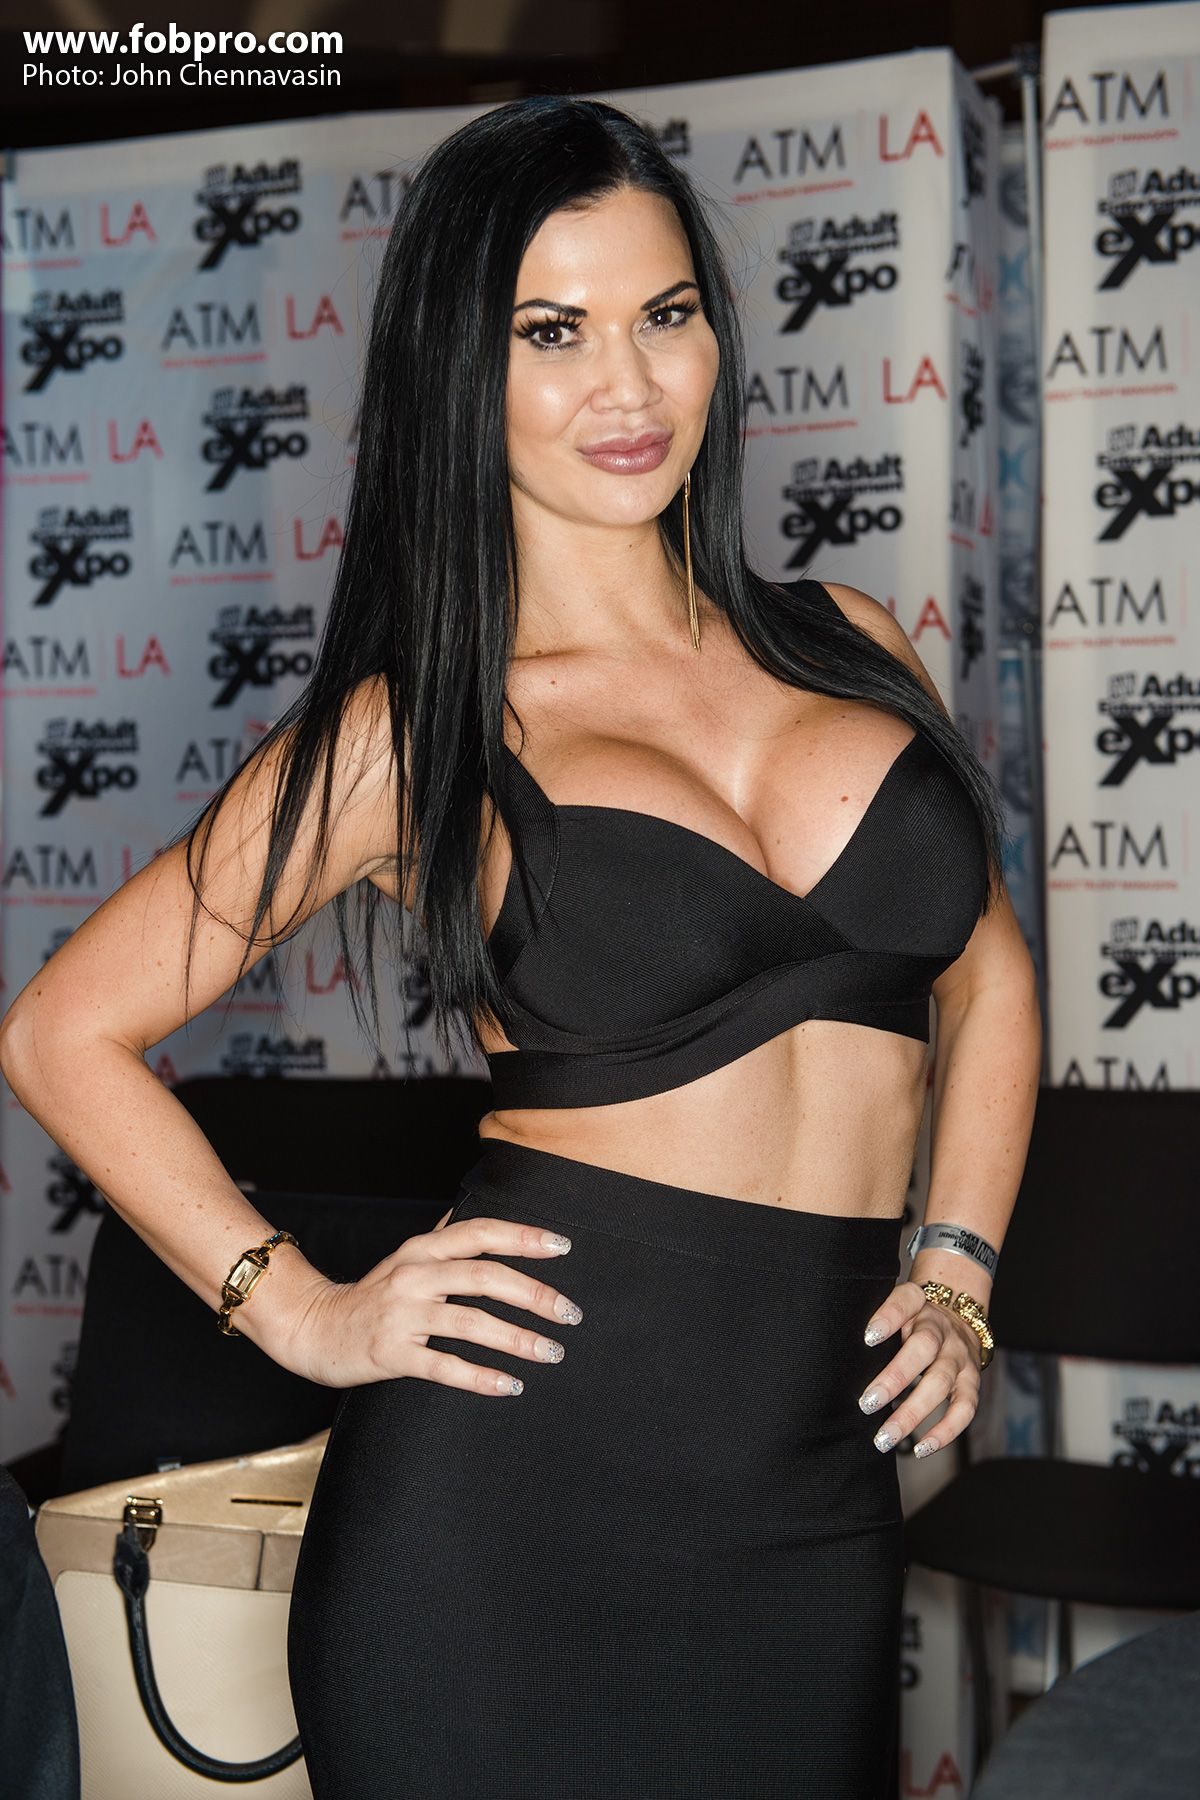 Jasmine Jae Photos